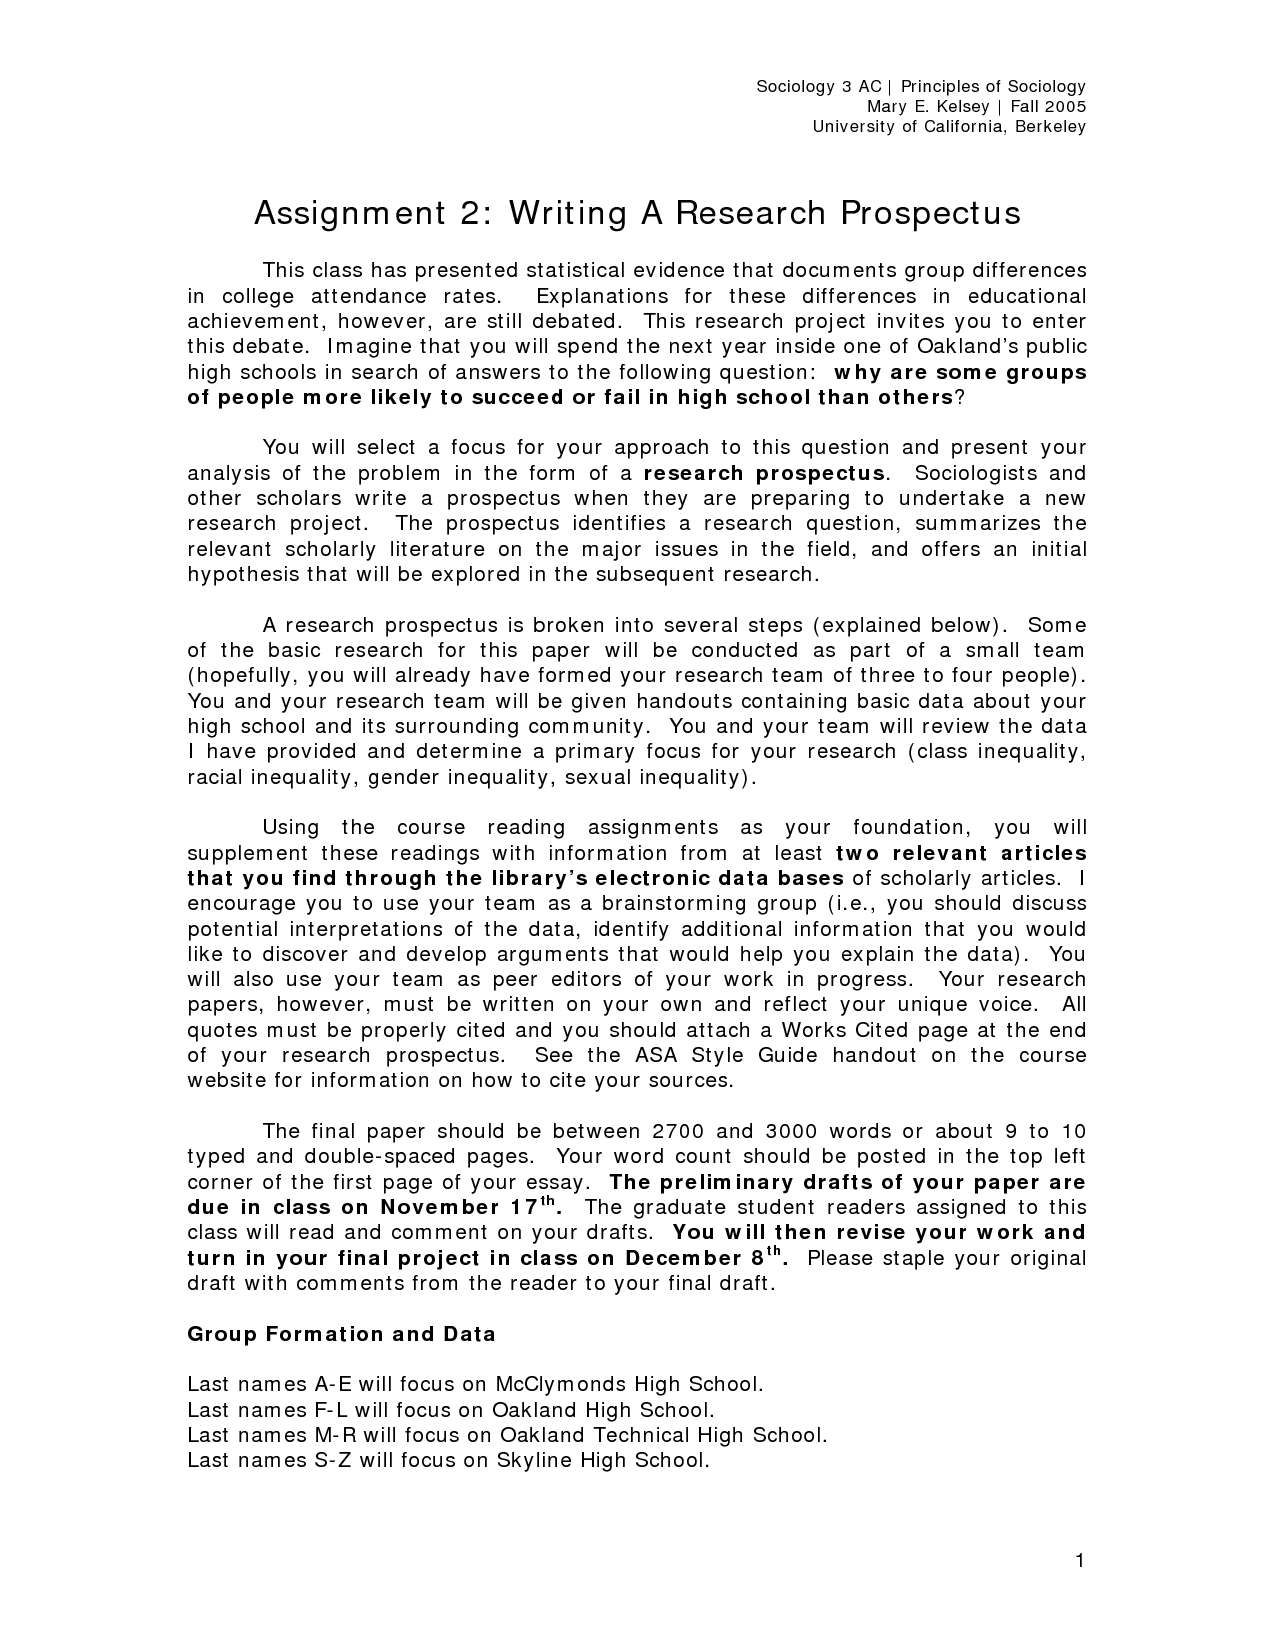 prospectus research paper A prospectus for a thesis for a graduate school program or a master's program is an important part of the entire post-graduate experiece paper masters will write your prospectus exactly according to your university specifications.